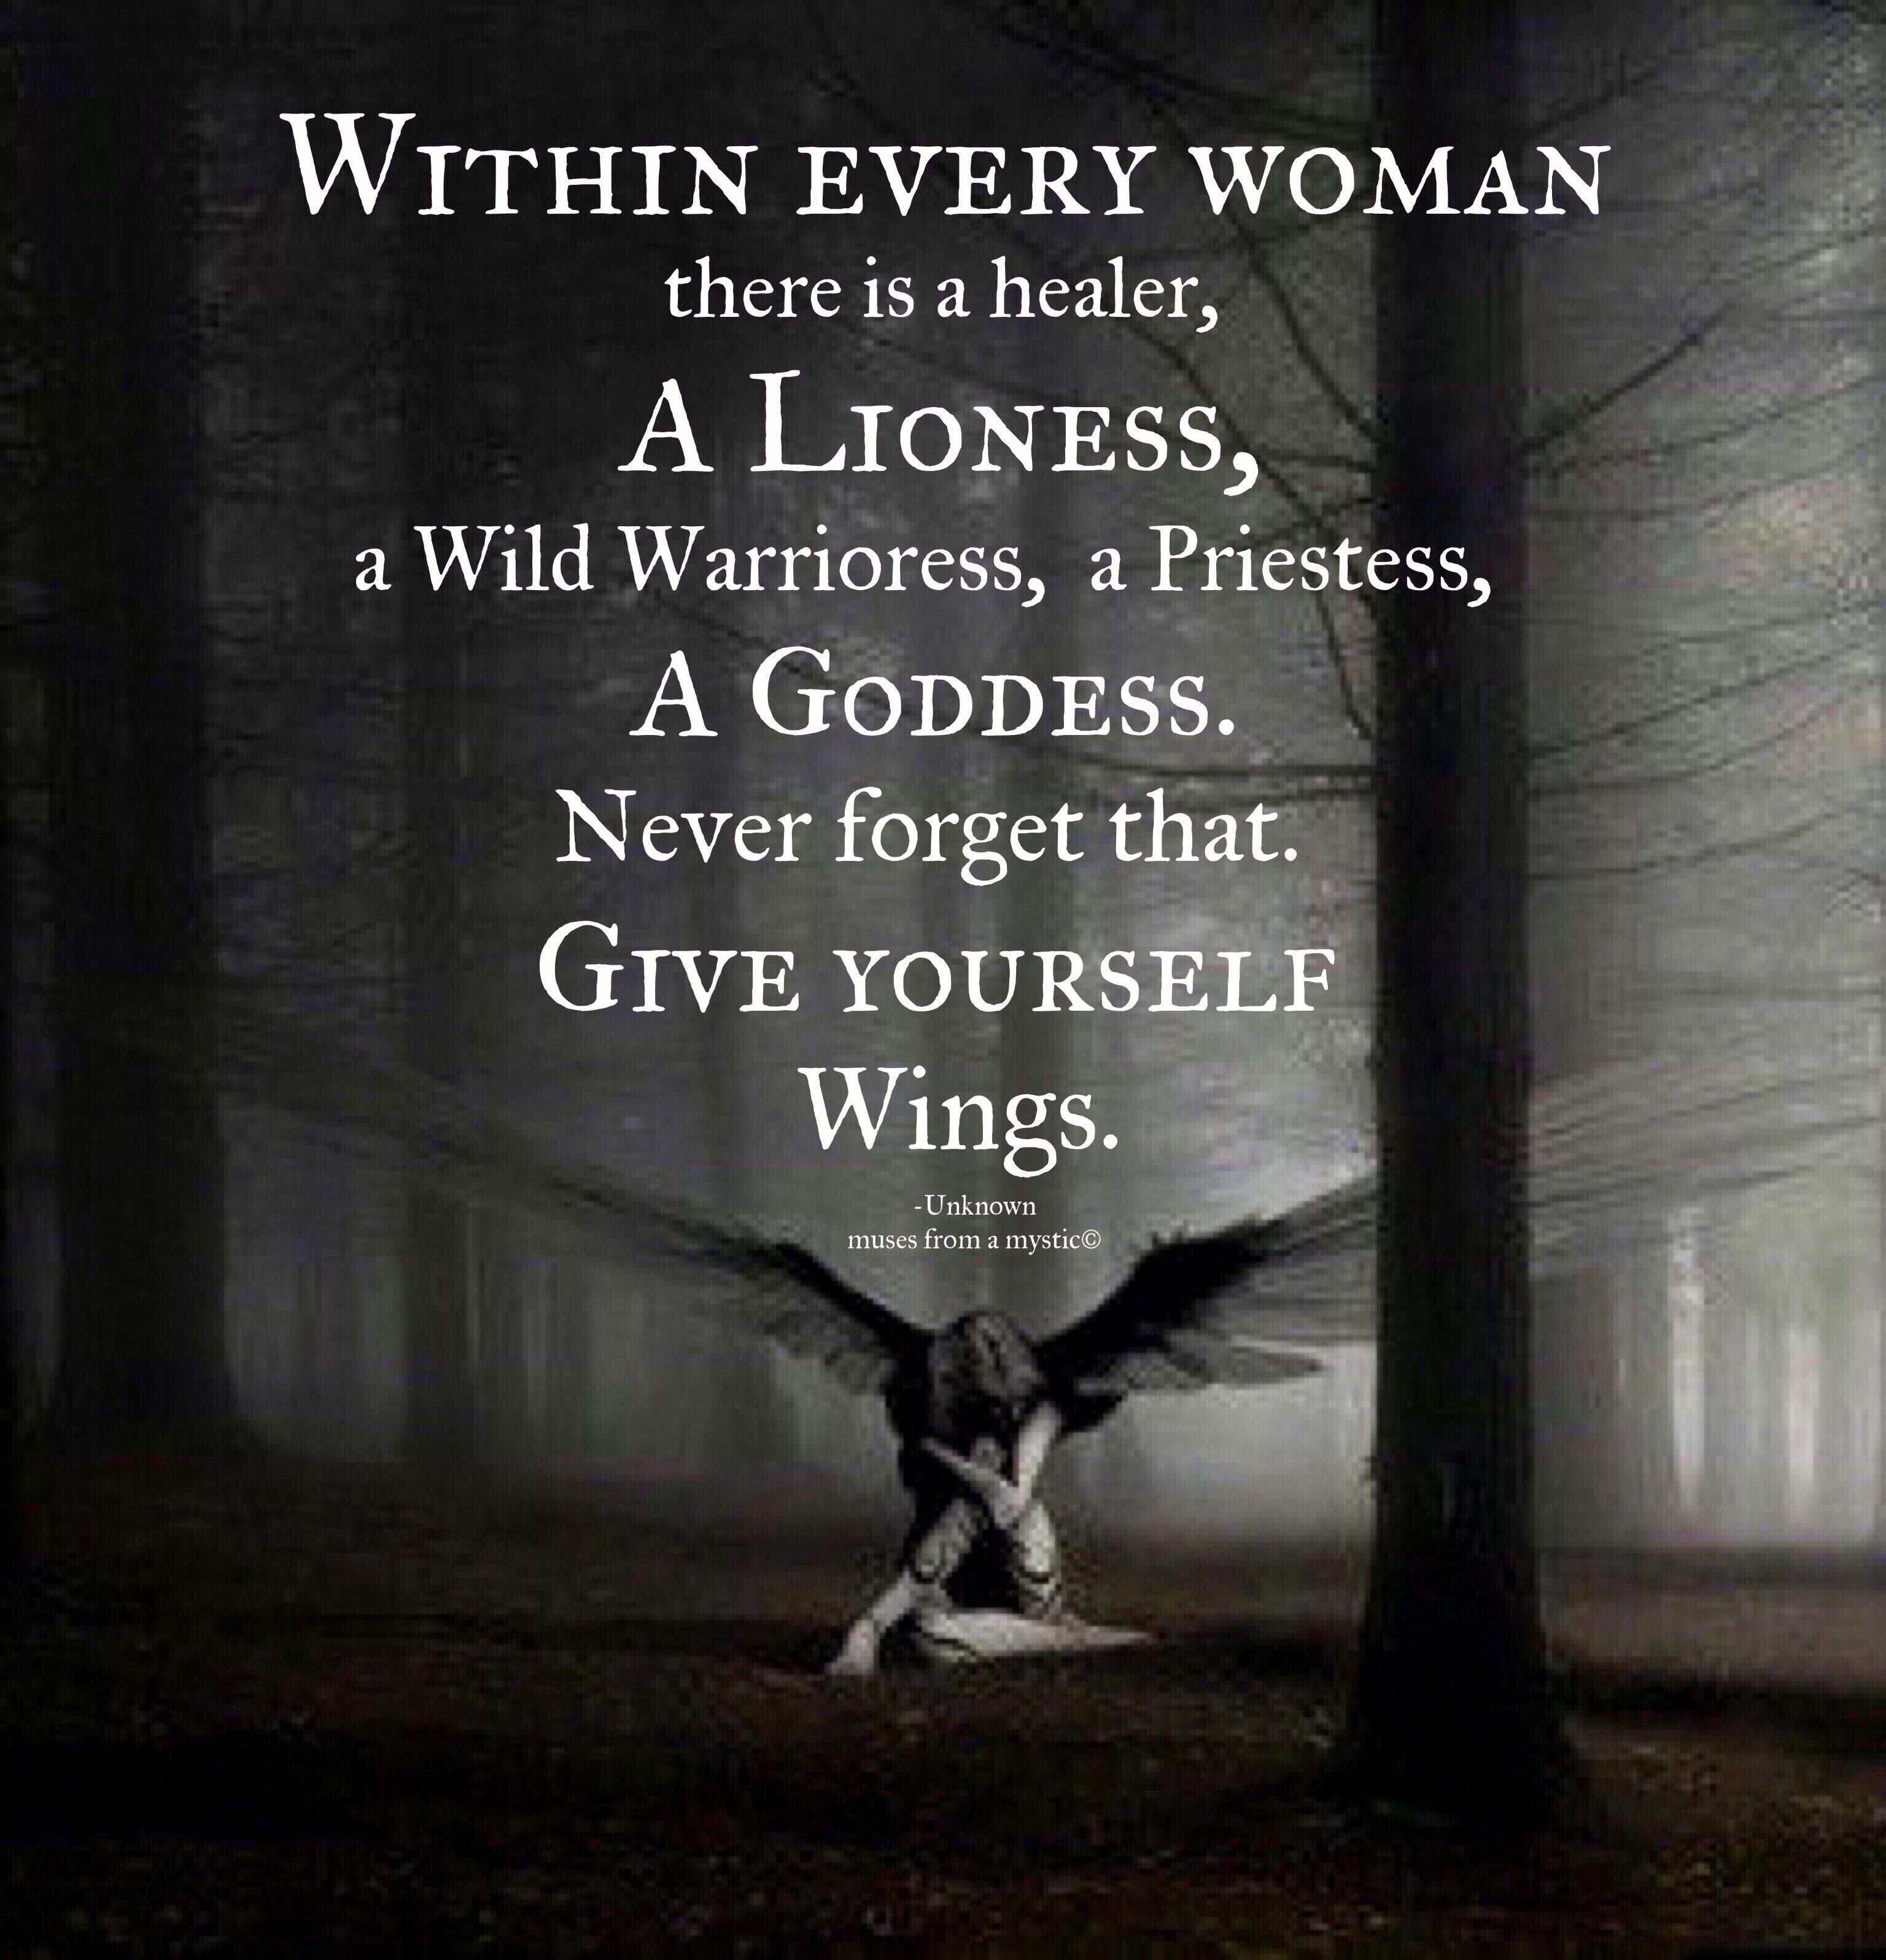 goddess lilith quotes Google Search Goddess quotes